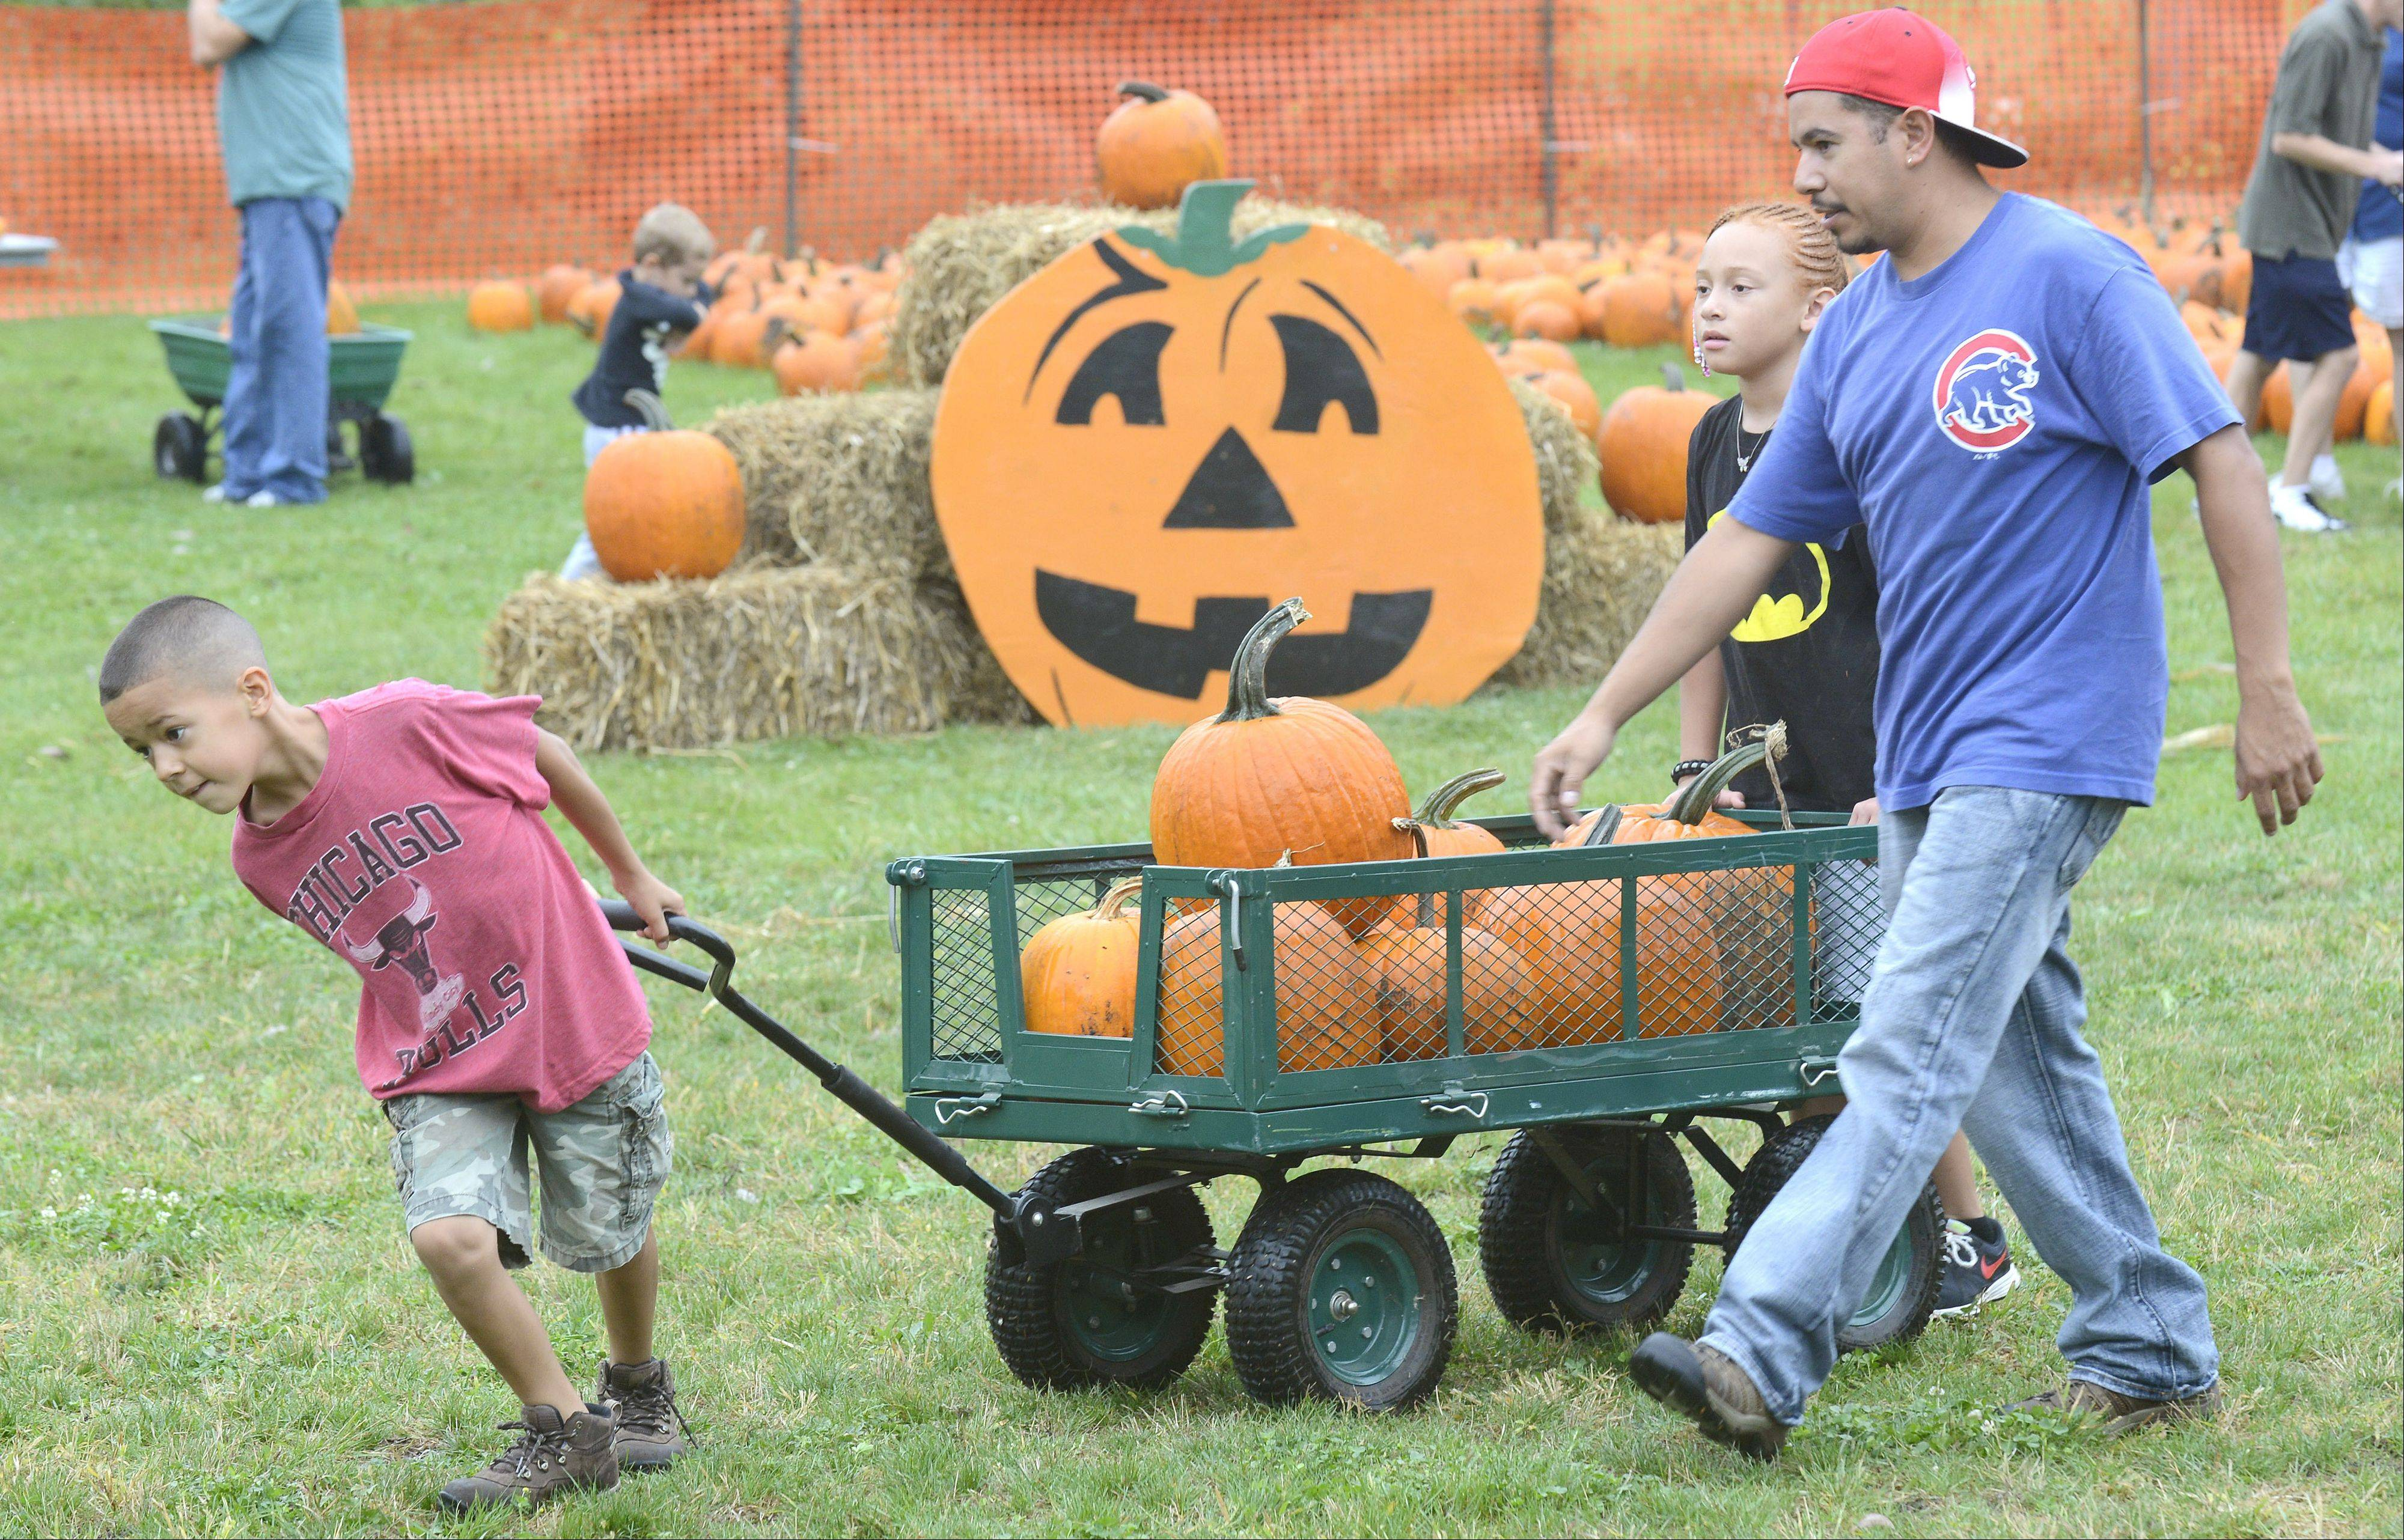 Andre Rios, 8, pulls his family's pick of pumpkins back from the patch along with his father, Angel, and cousin Zoie Lewis, 8, all of South Elgin, at the city's annual Fall Festival on Saturday. While on their way to their truck, Andre kept veering off the path toward a table full of doughnuts being sold by South Elgin policemen. The family comes to the event every year.